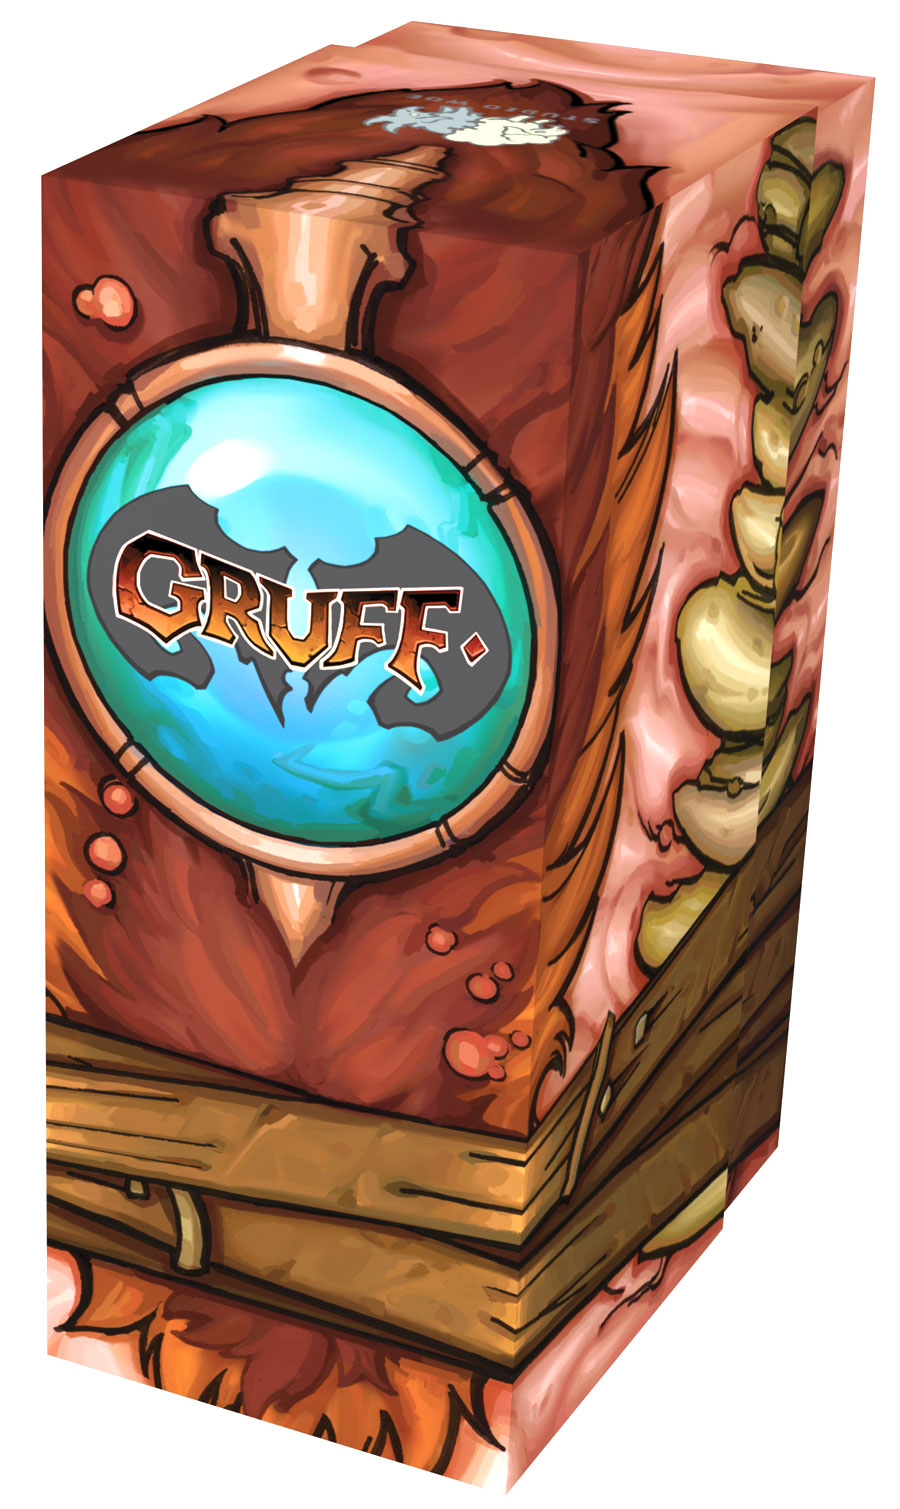 GTM #212 - Gruff Gets Your Goat!